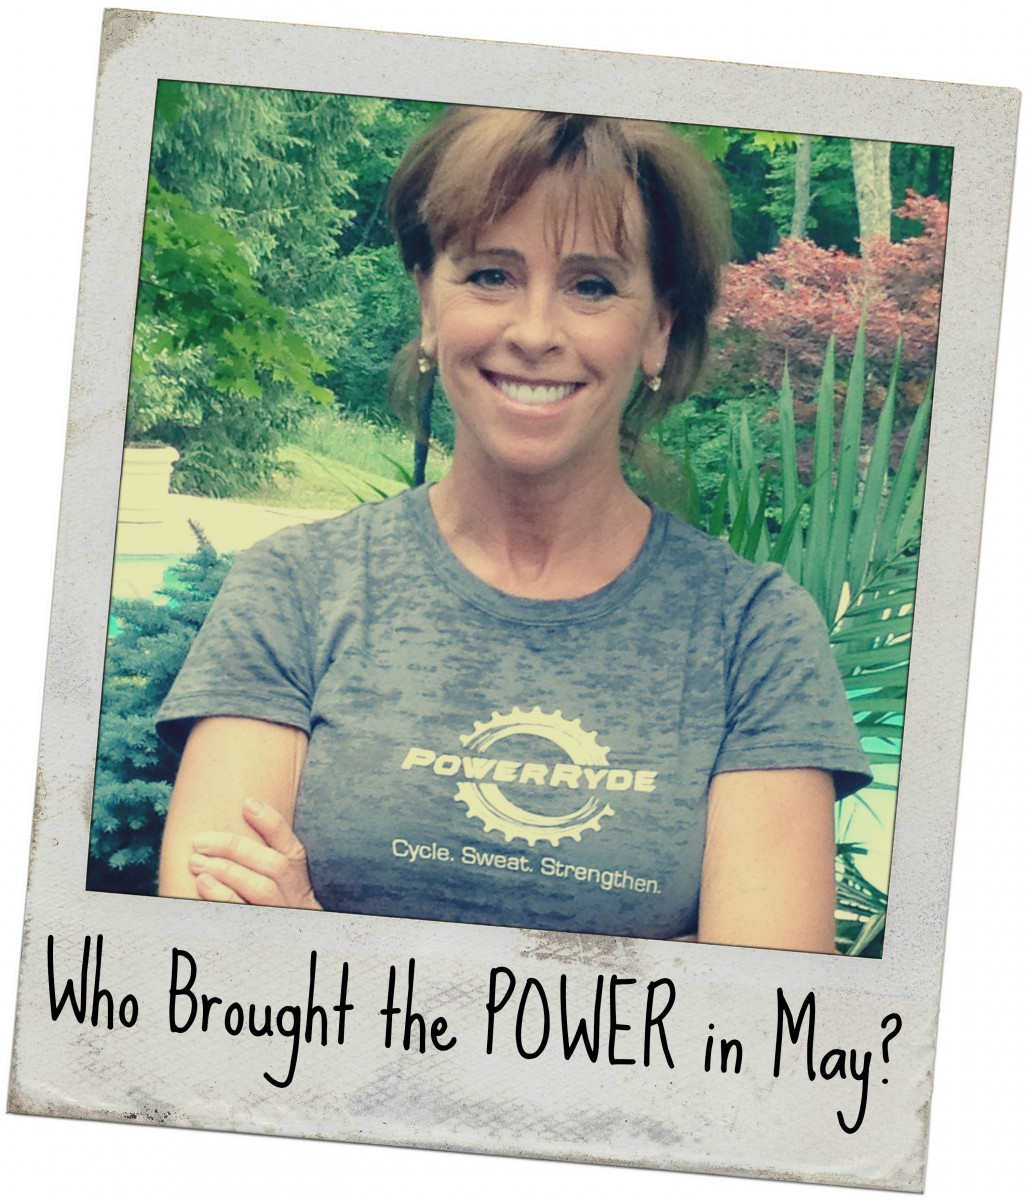 Who Brought the POWER in May?